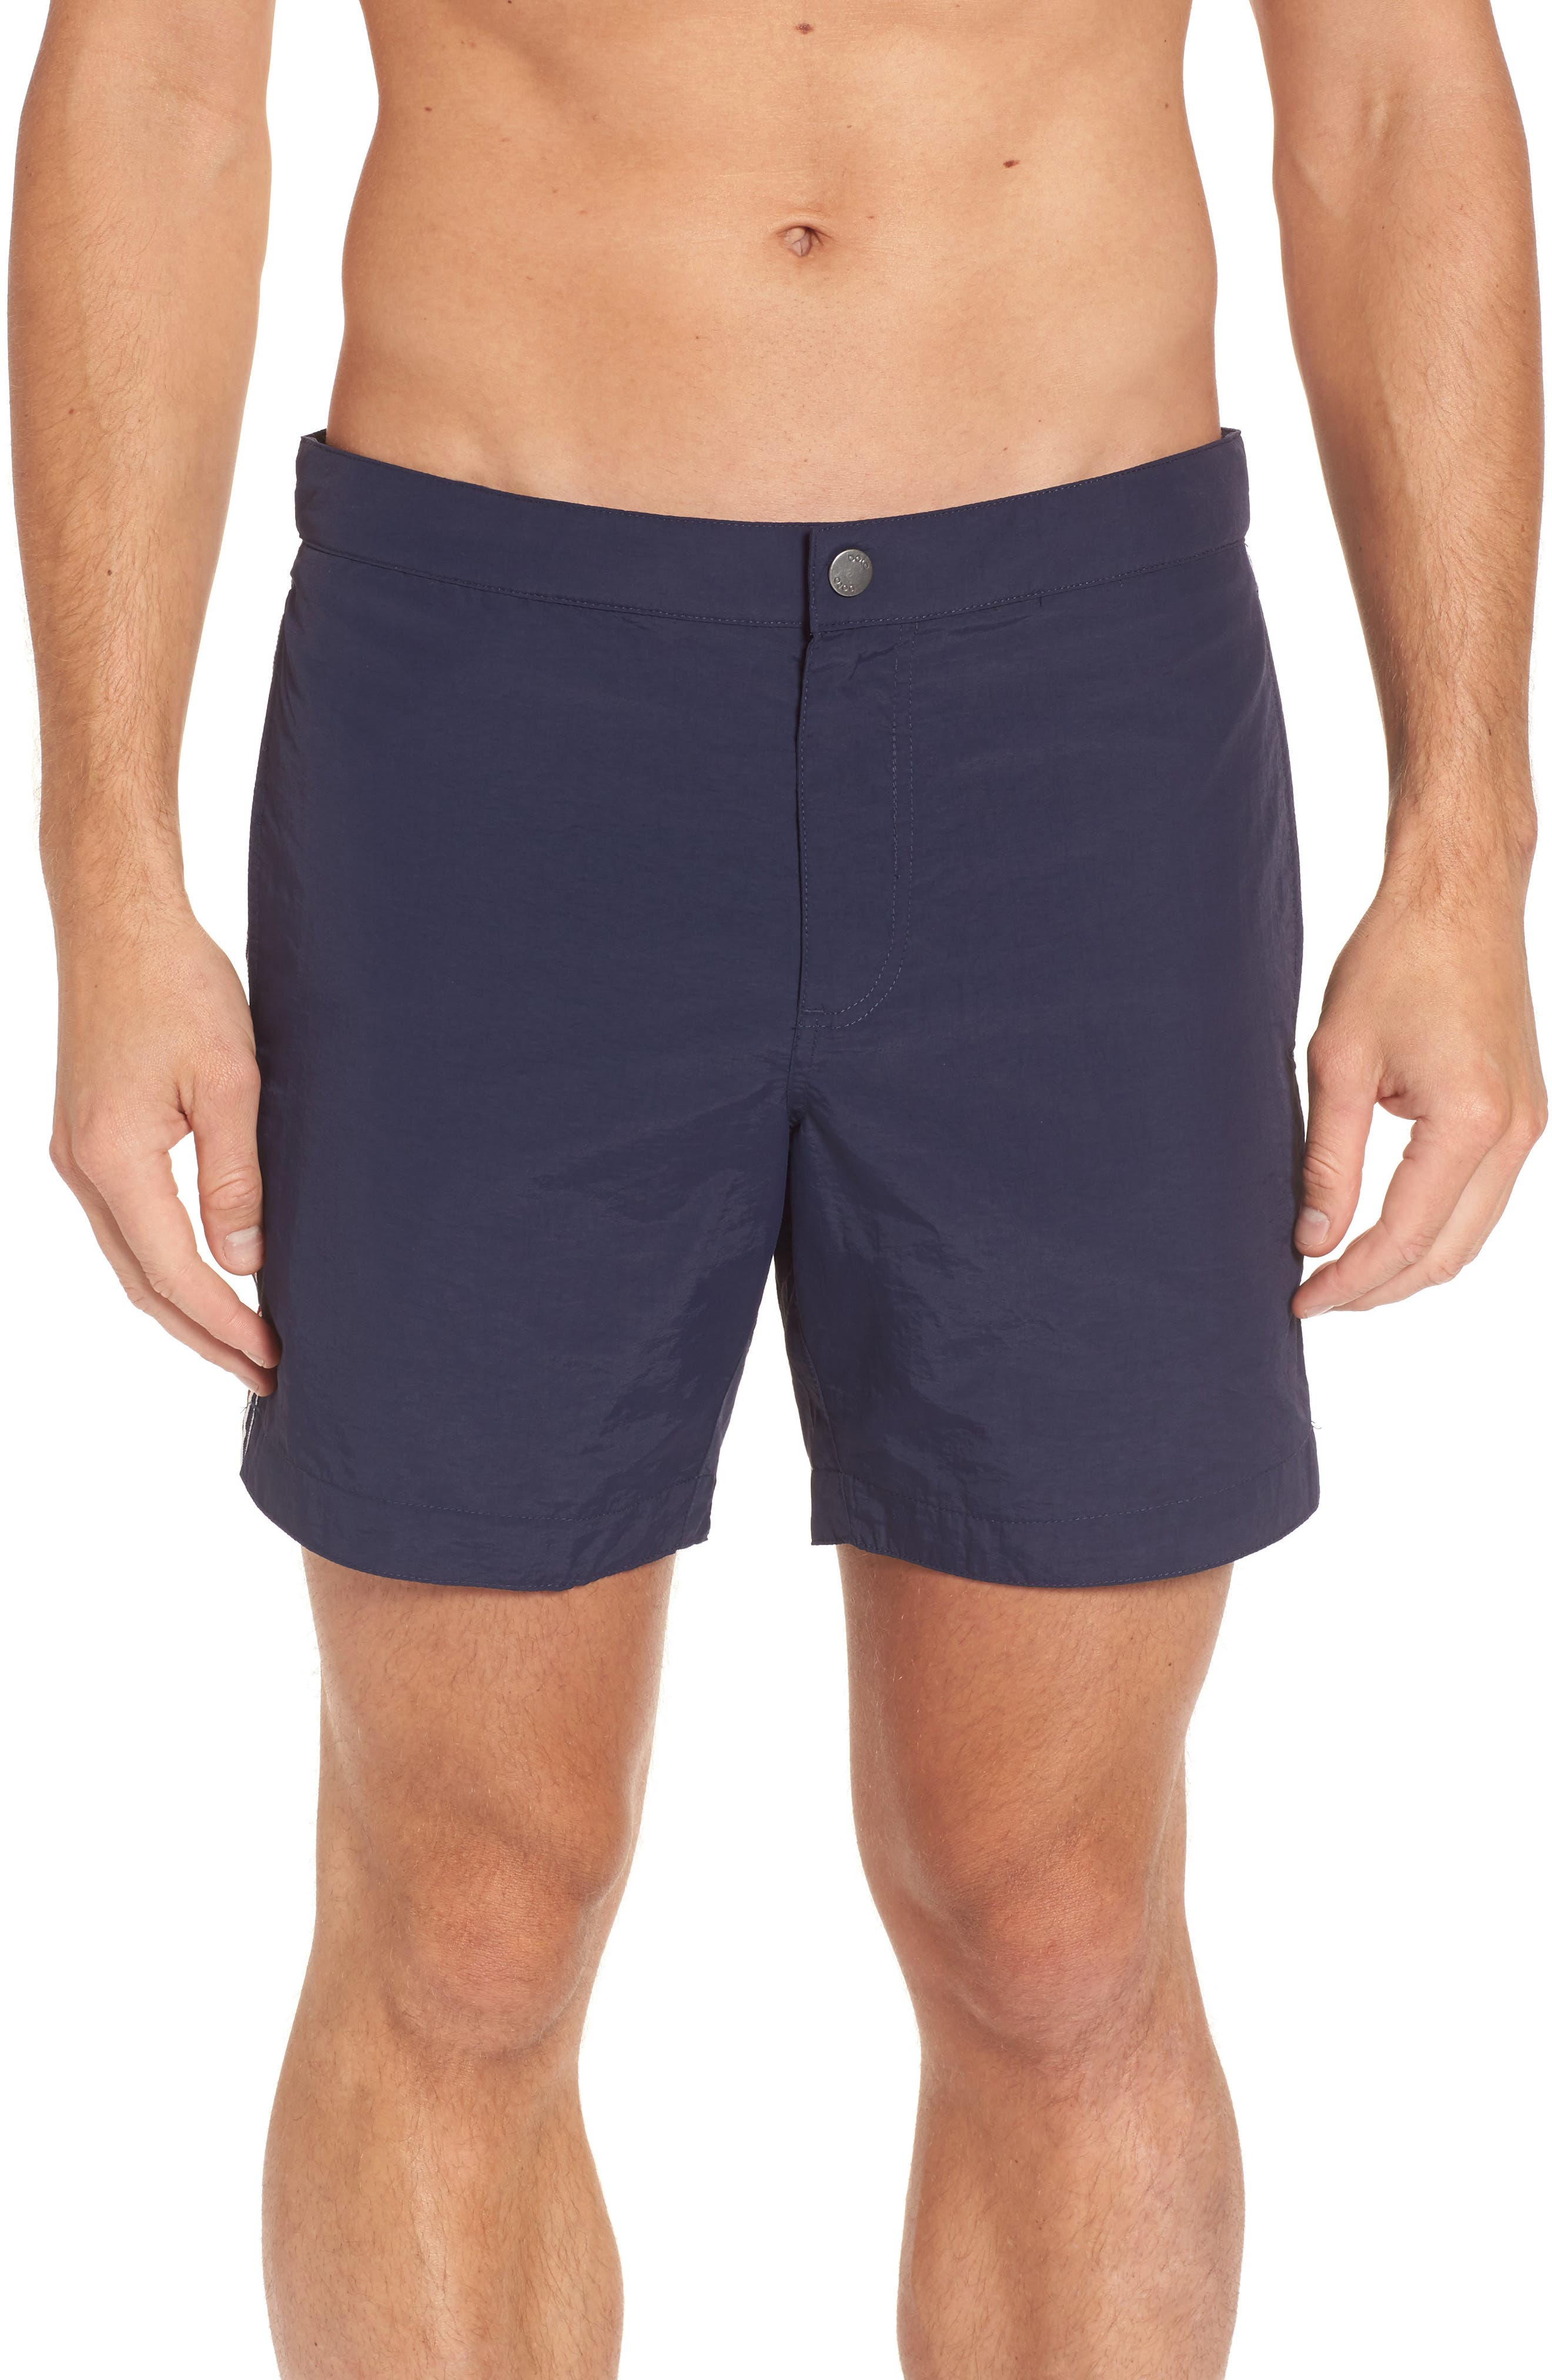 Aruba Tailored Fit French Stripe Swim Trunks,                         Main,                         color, Navy French Stripes